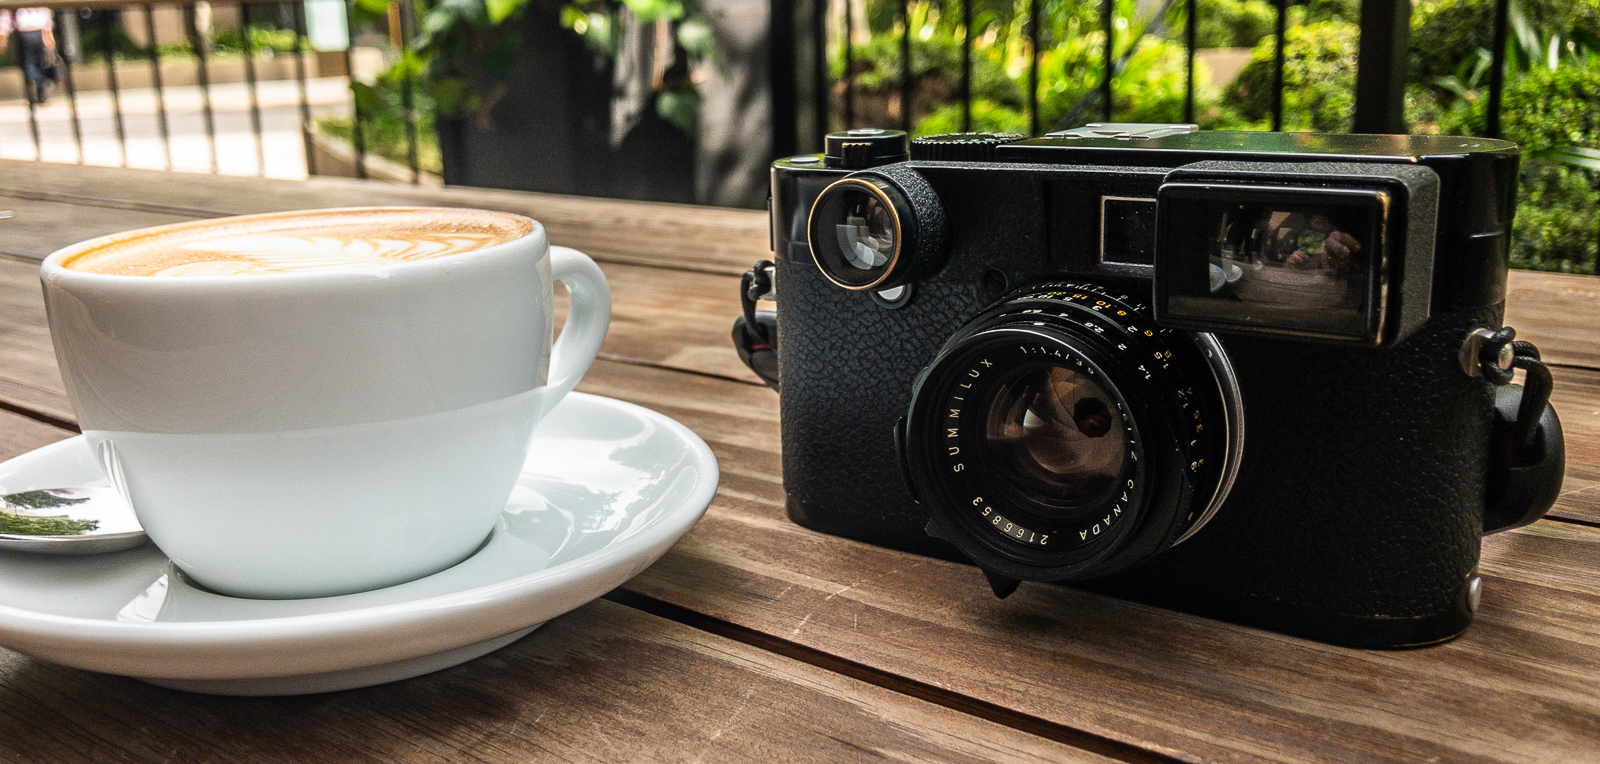 5 Frames with a First-Gen Leica Summilux 35mm f/1.4 Wide Open and a Leica M240 – by Steven Bleistein